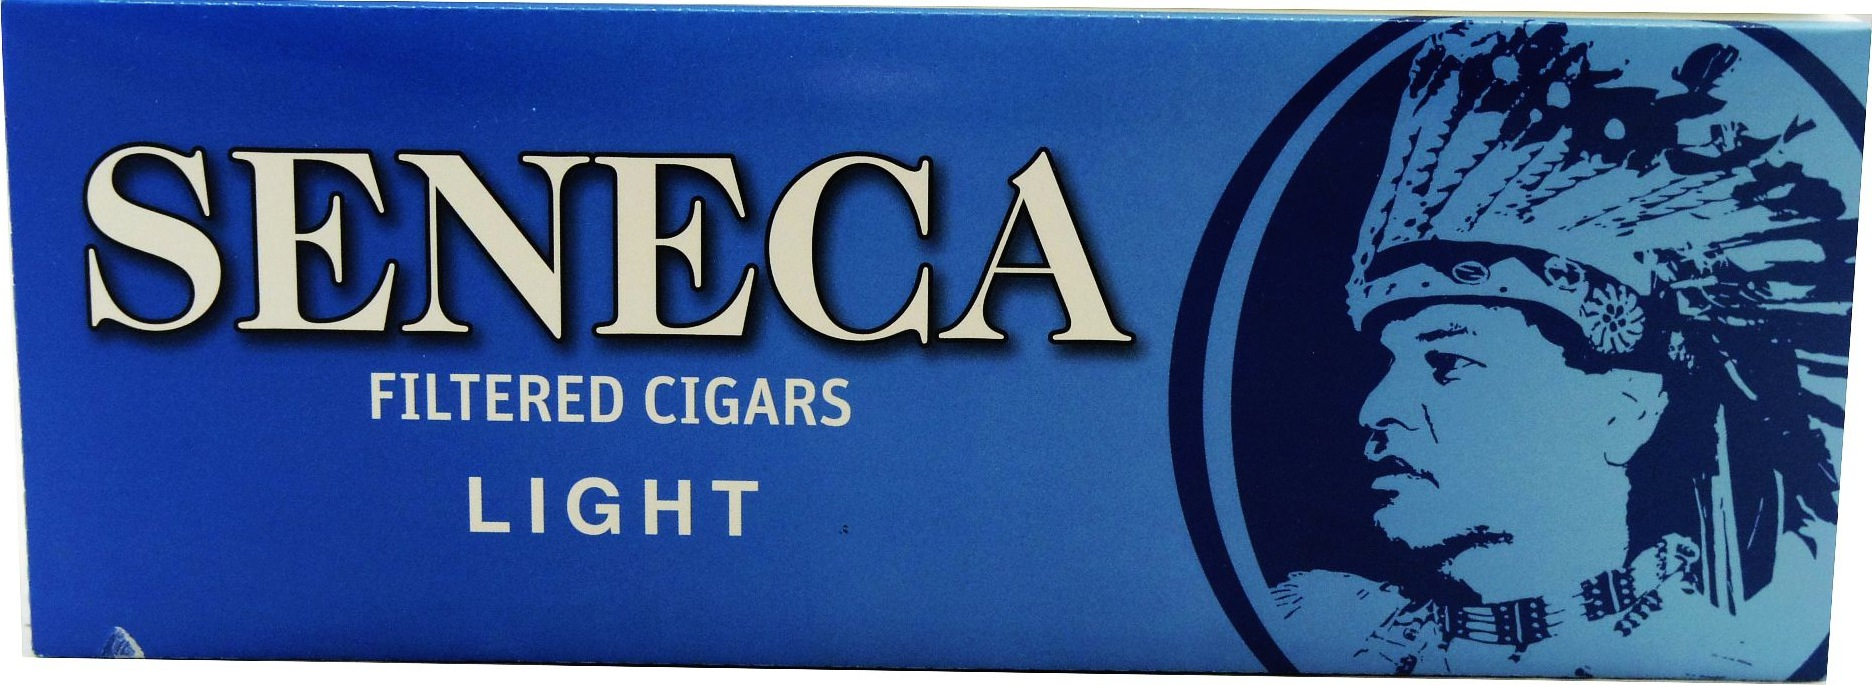 SENECA LIGHT LITTLE CIGARS